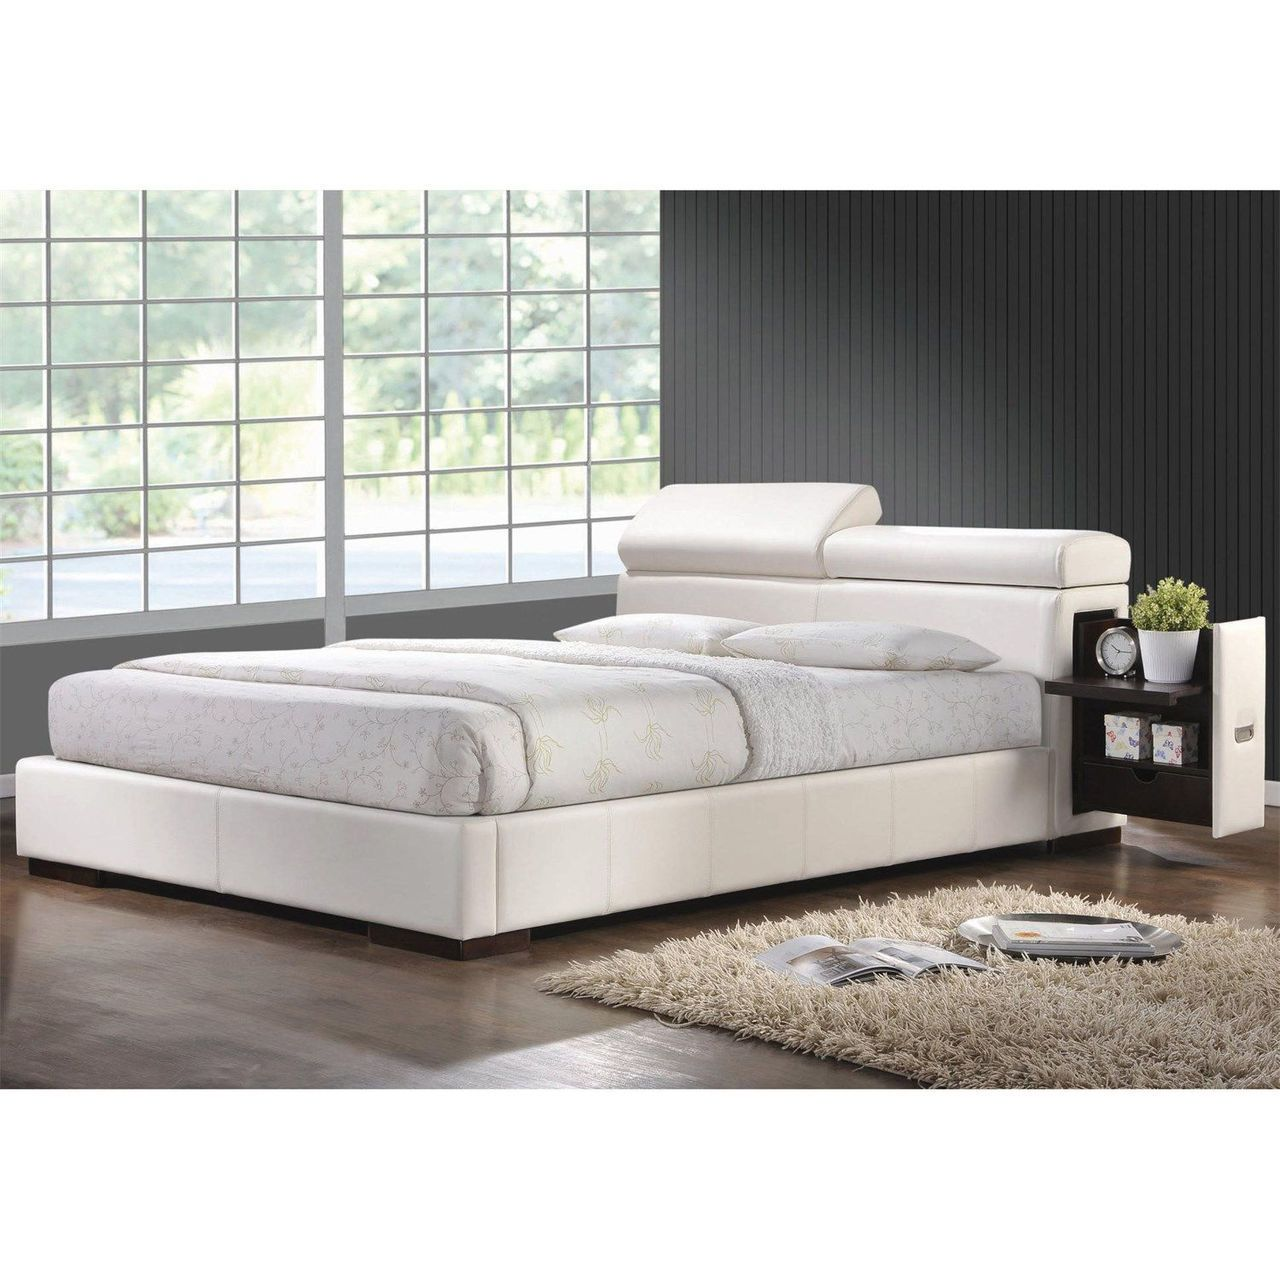 Coaster Maxine Ultra Modern Upholstered Bed In White Queen